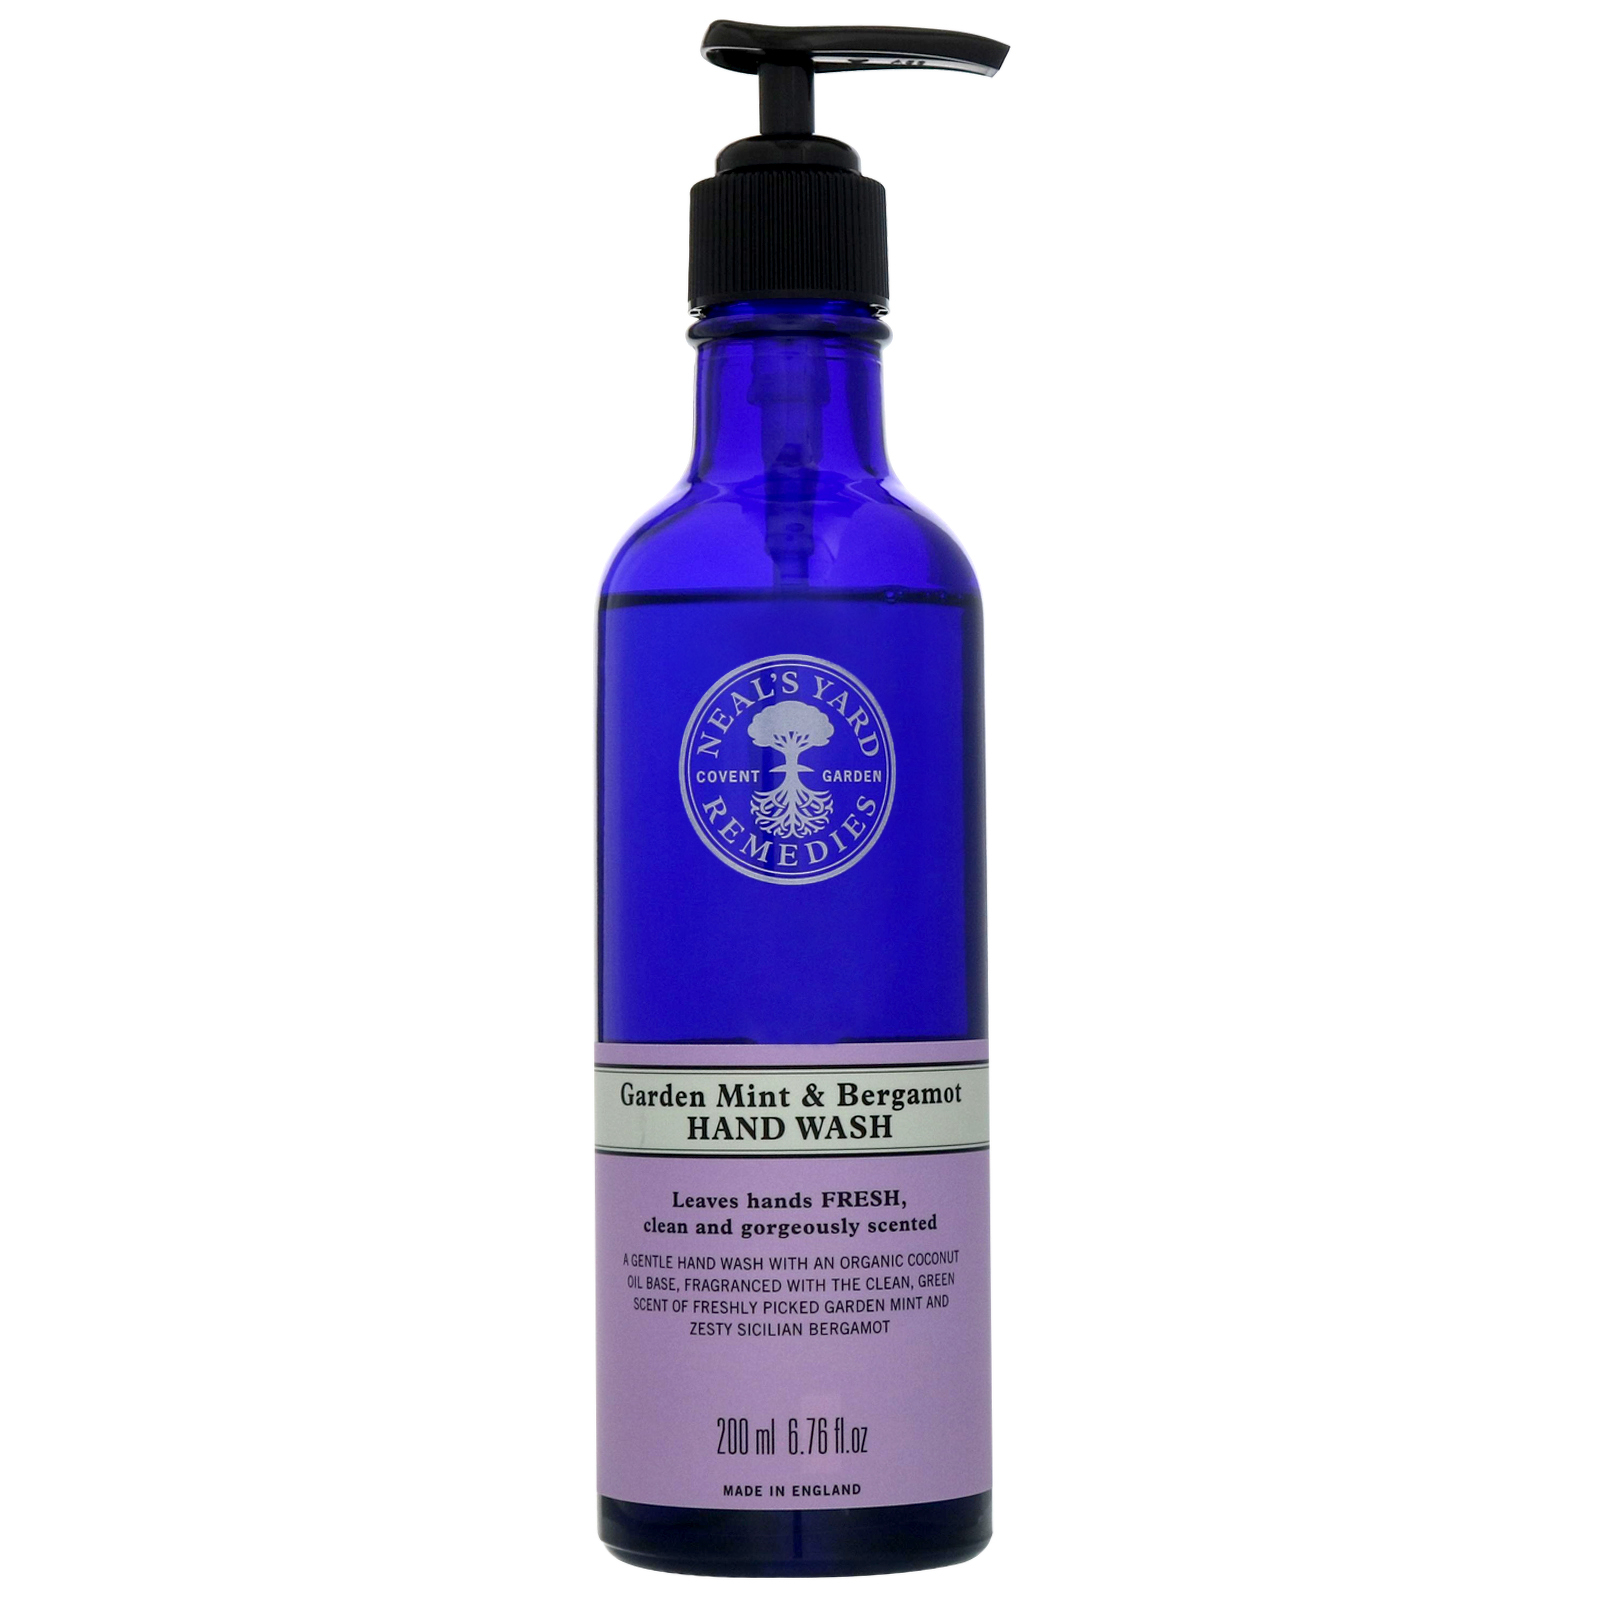 Neal's Yard Remedies Hand Care Garden Mint & Bergamot Hand Wash 200ml